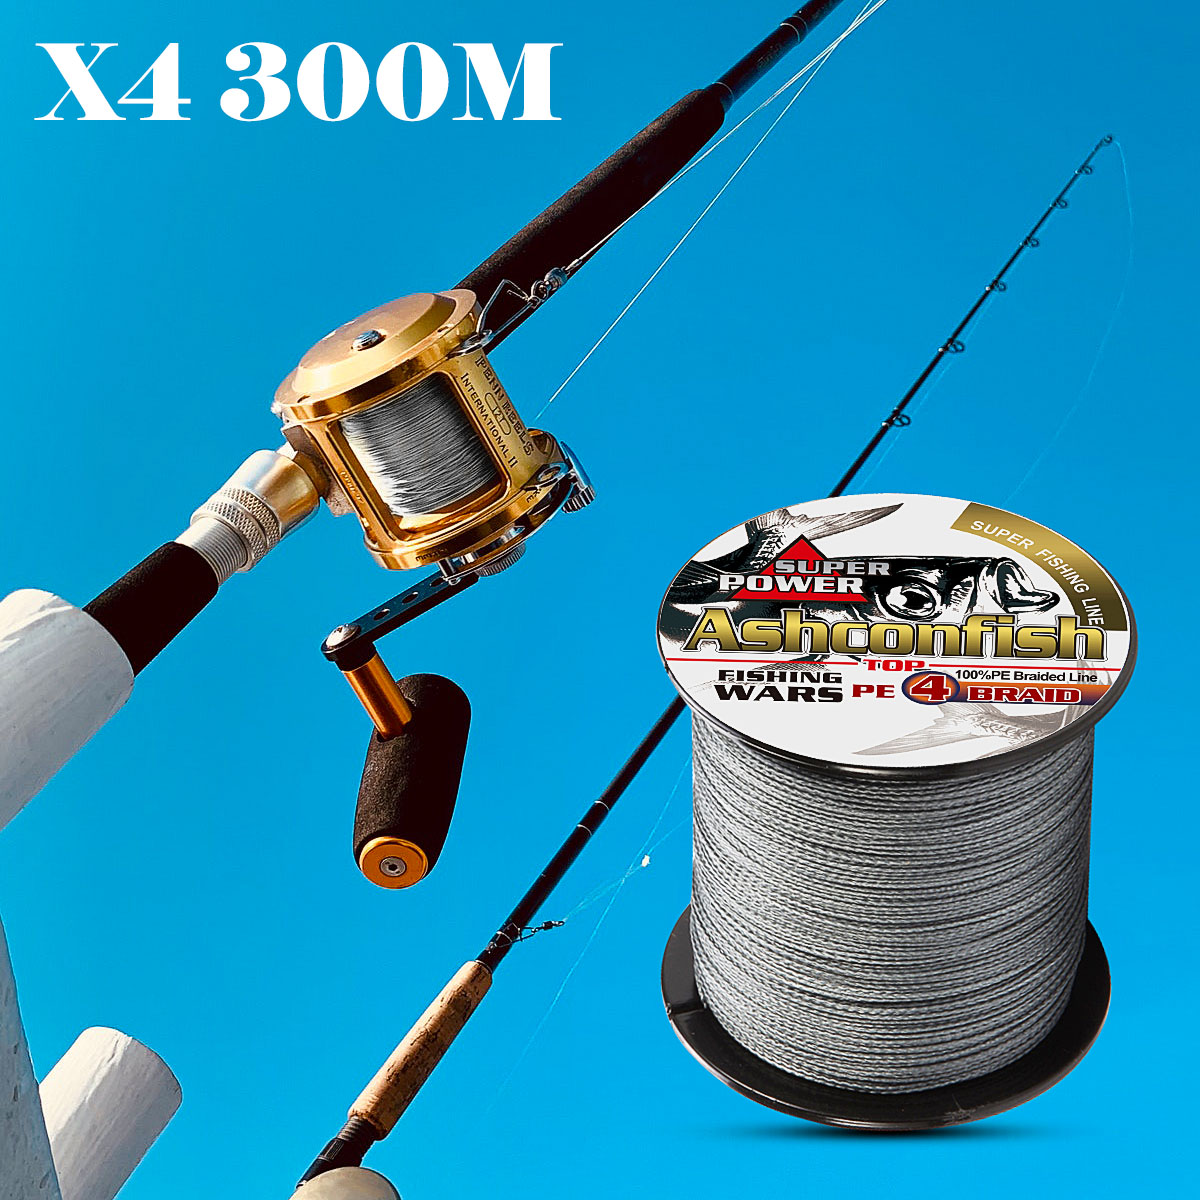 quanlity <font><b>fishing</b></font> <font><b>line</b></font> 300M super pe fiber <font><b>braided</b></font> wire 4 Strands strong <font><b>6LB</b></font>-100LB <font><b>fishing</b></font> tools 0.1mm-0.55mm <font><b>fishing</b></font> thread image